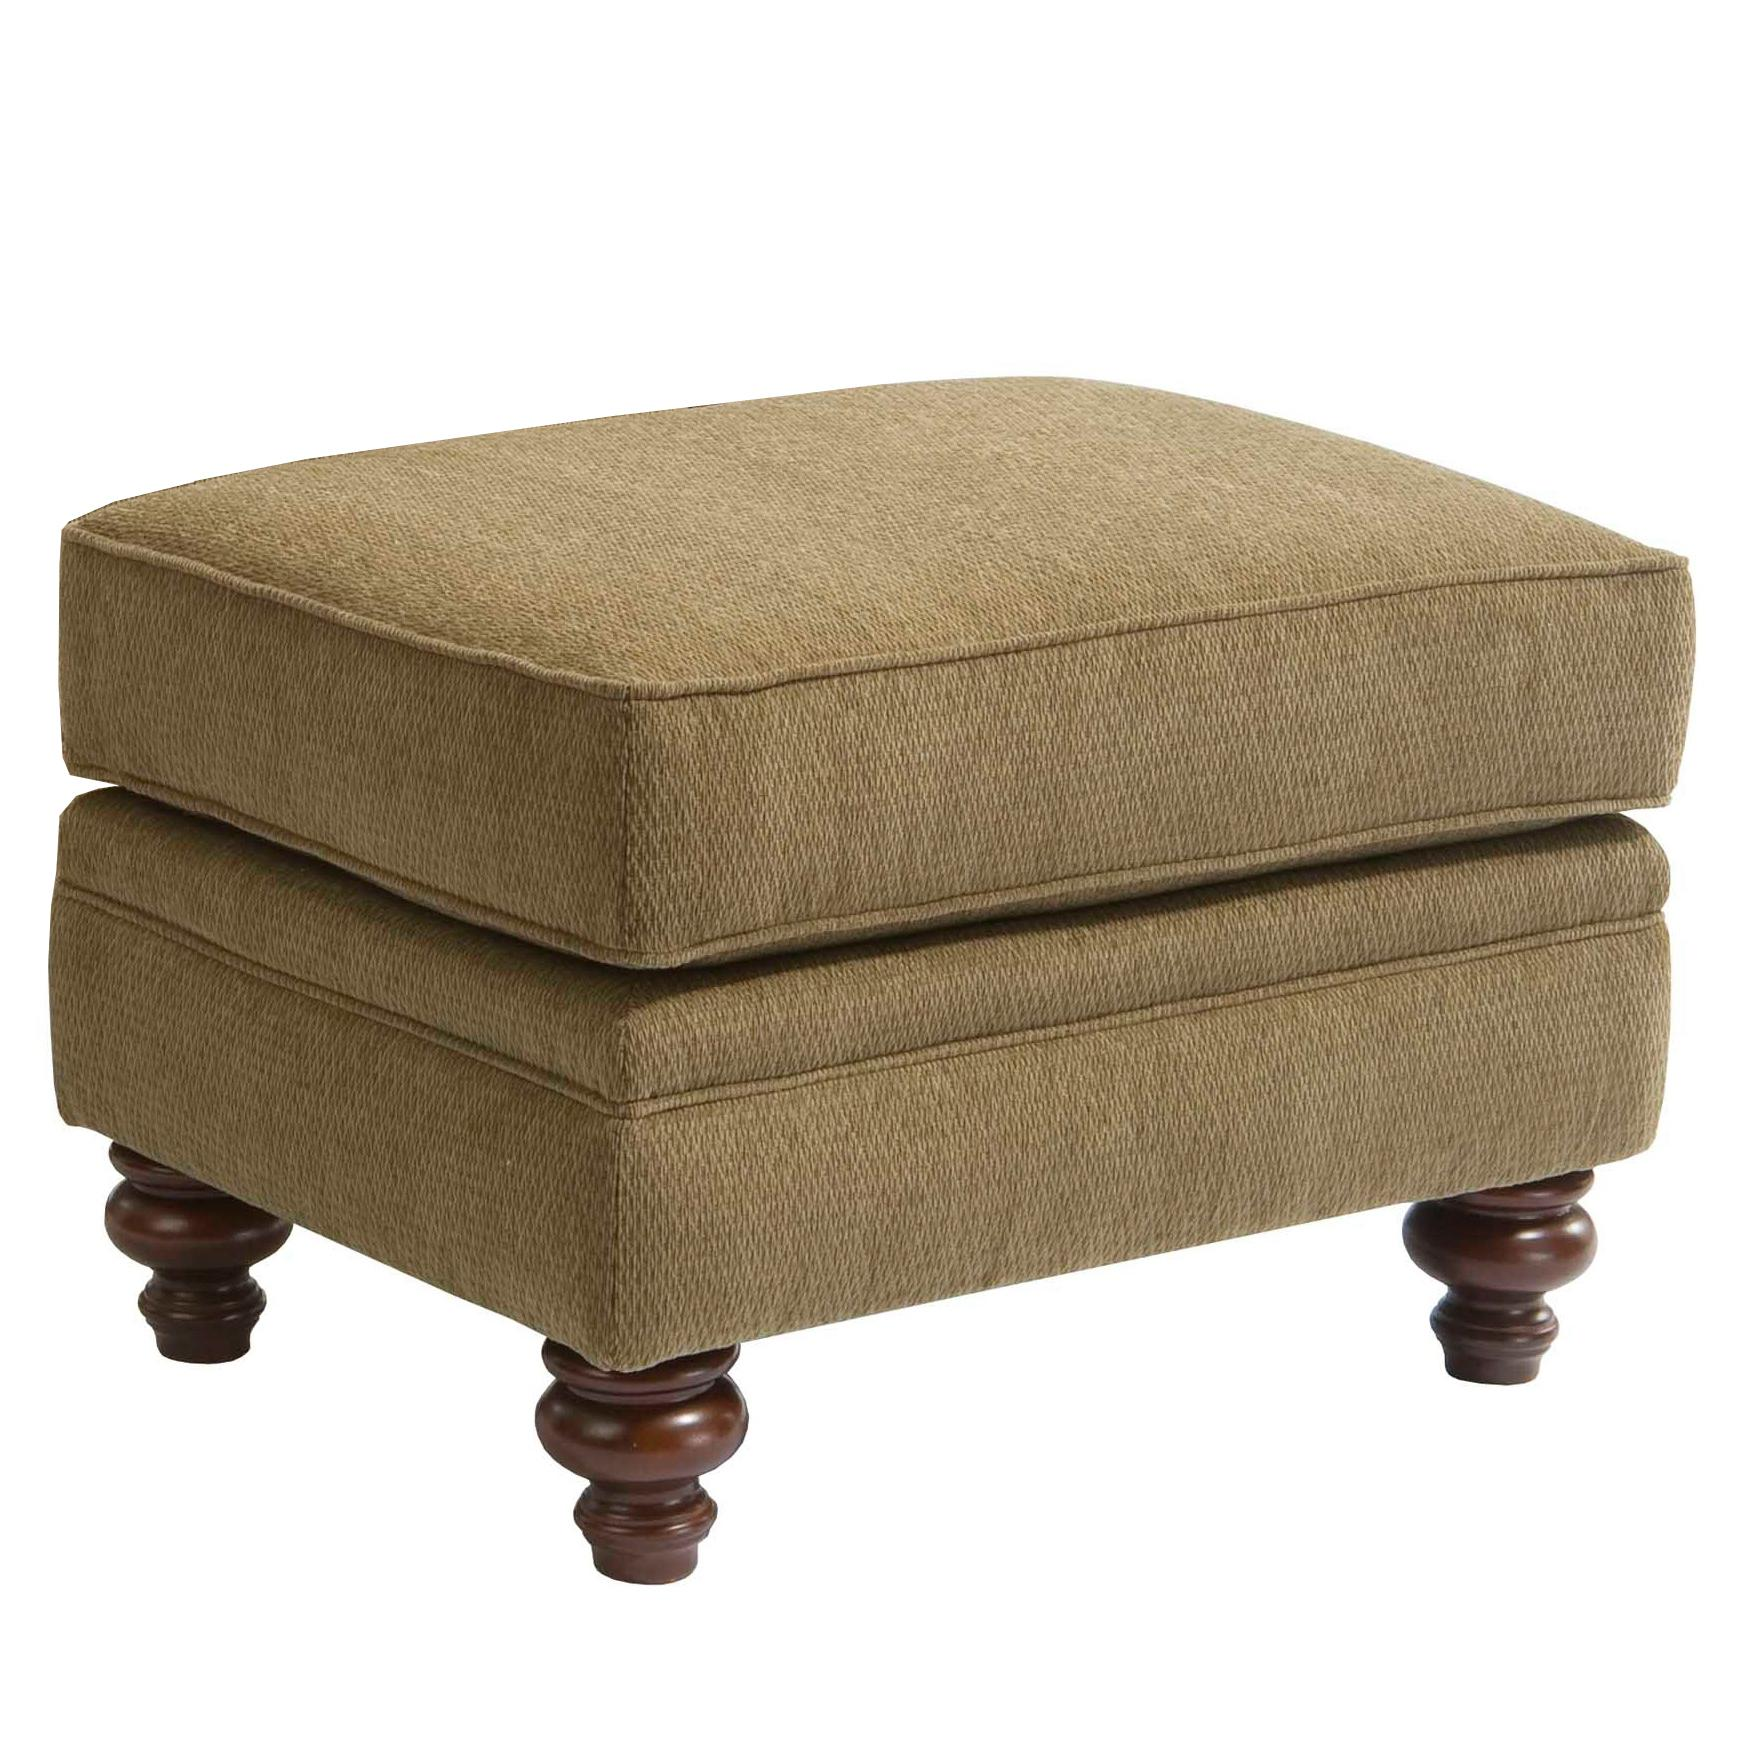 Broyhill Furniture Larissa Upholstered Ottoman - Item Number: 6112-5